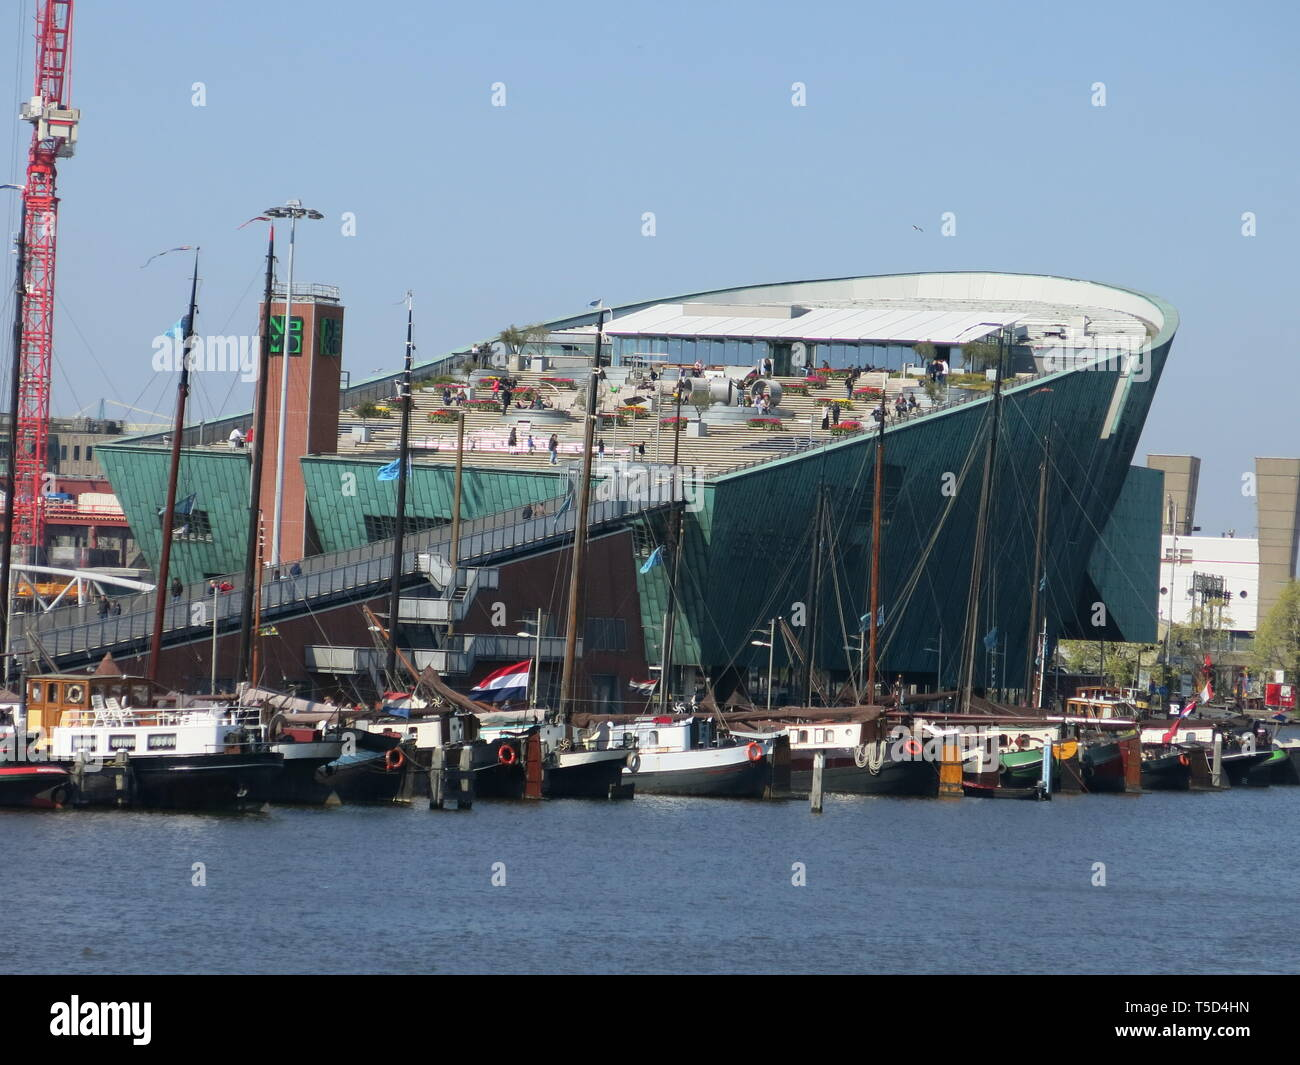 View from across the harbour of the impressive giant green hull of the boat-shaped building for NEMO Science & Technology museum in Amsterdam - Stock Image